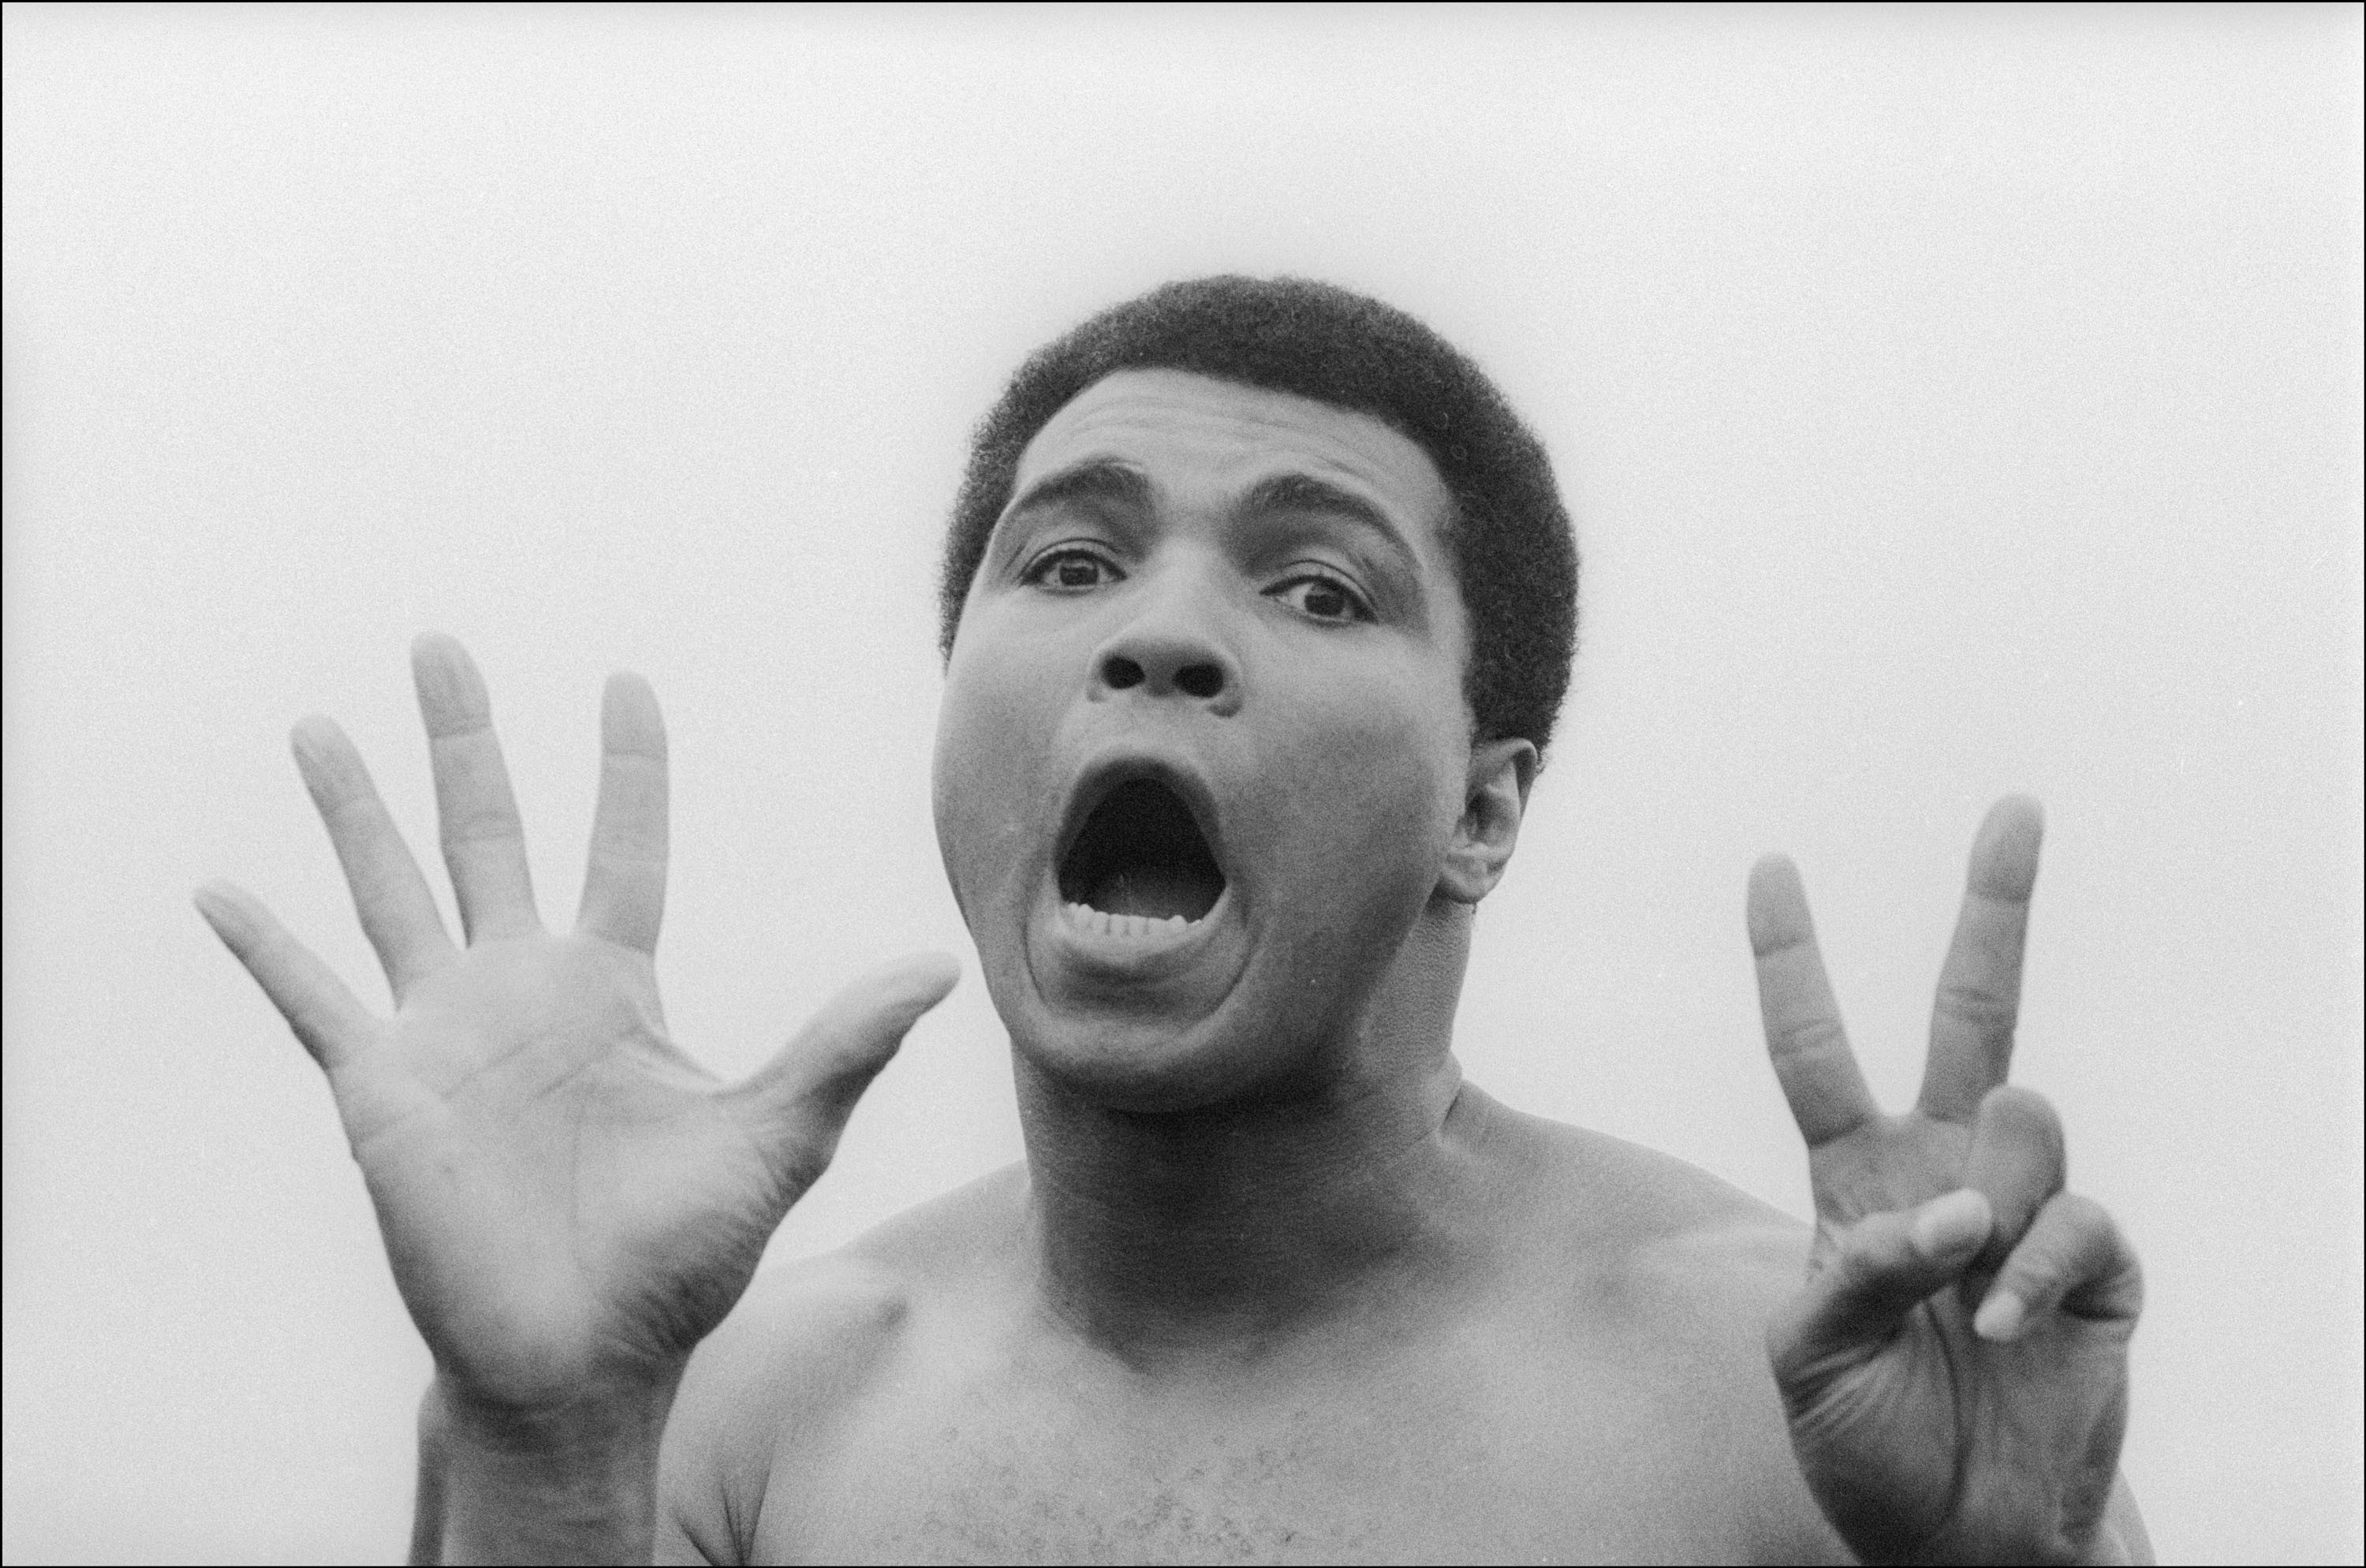 September 22, 1977 - Deer Park, Pennsylvania, United States: After a workout at his training camp, Muhammad Ali makes the number seven to signify the number of rounds to defeat his next opponent. Ali went on to defeat Earnie Shavers in a fifteen round unanimous decision on September 29 and retained the Ring, WBC & WBA World Heavyweight titles., Image: 288876179, License: Rights-managed, Restrictions: , Model Release: no, Credit line: Profimedia, Polaris